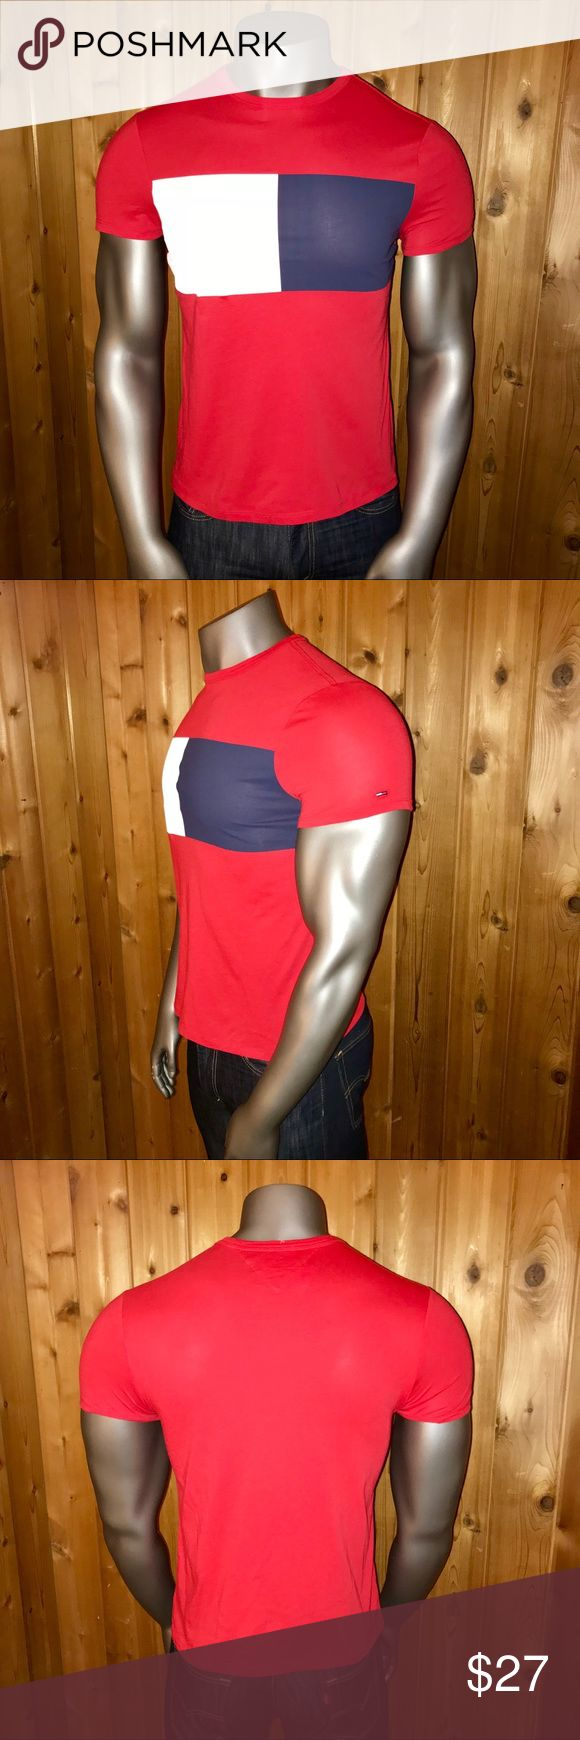 NWT! Tommy Hilfiger Classic Logo Men's T-Shirt Brand New With Tags!  Size: U.S. Men's Small Color: Red/White/Navy Blue  Tommy Hilfiger Big Bold Classic Flag Logo Fall 2017 Collection Regular Fit Made in Vietnam  T-Shirt comes from a smoke and pet free home  Thanks for looking! Tommy Hilfiger Shirts Tees - Short Sleeve